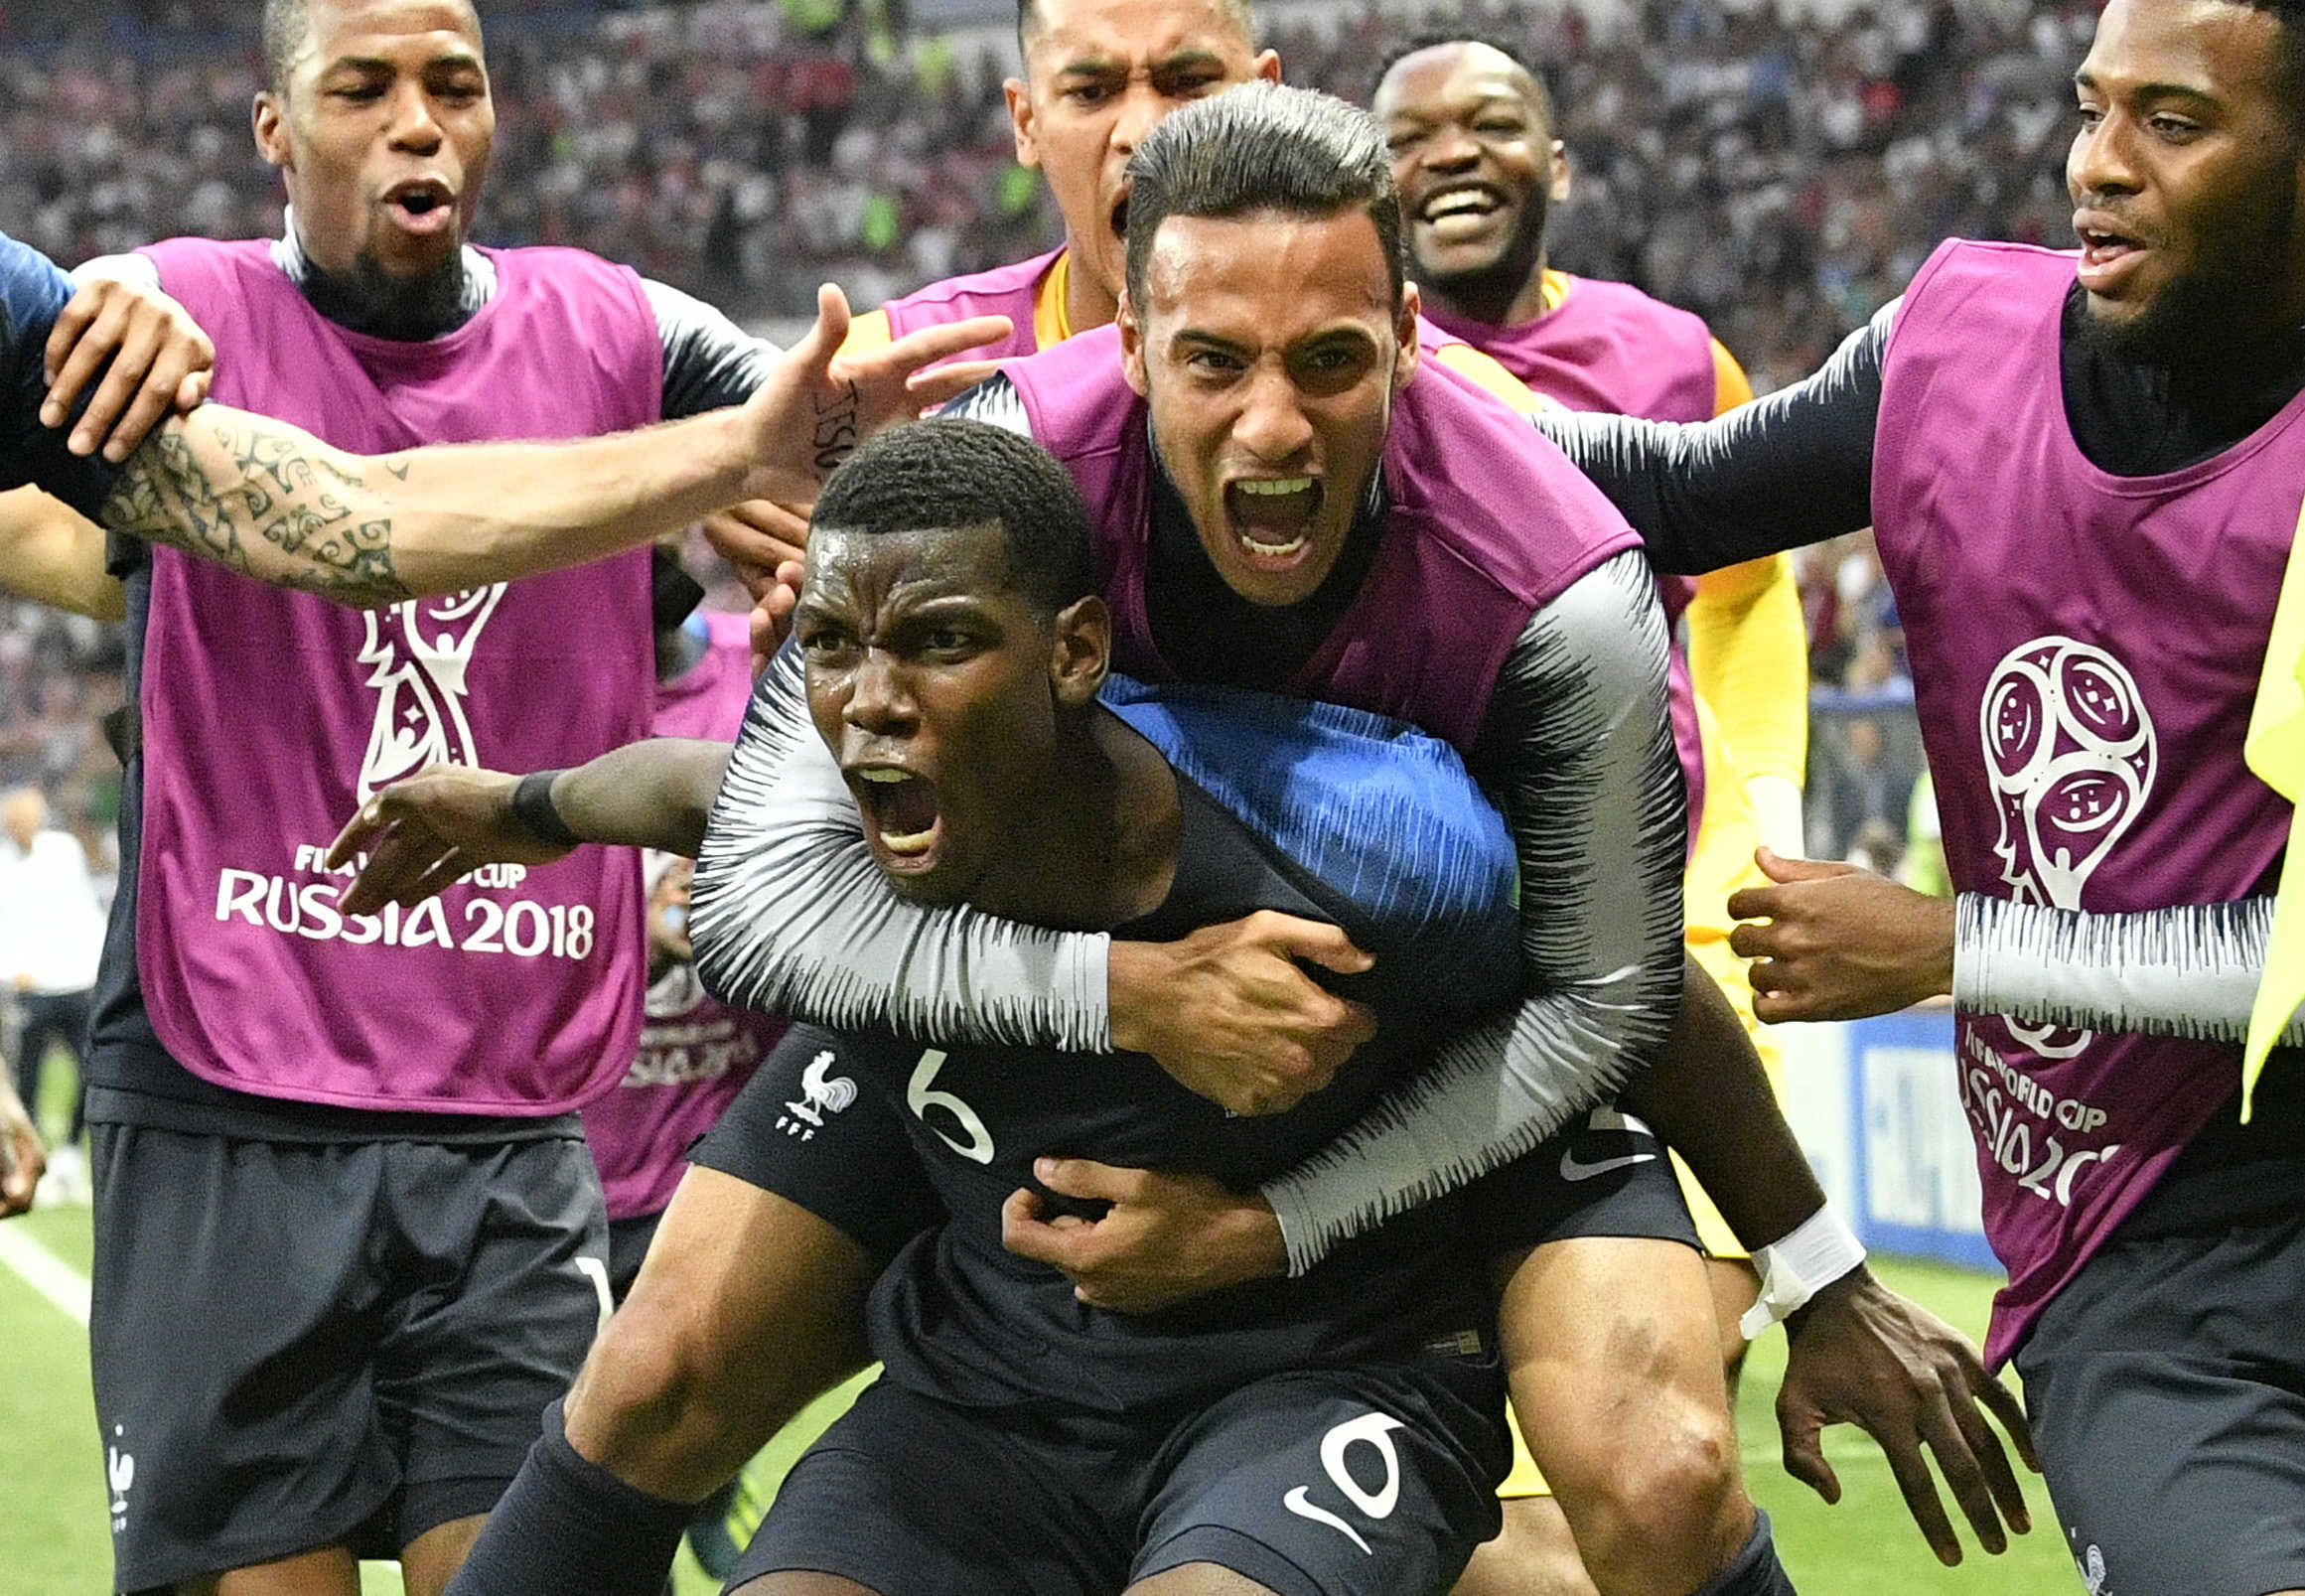 Paul Pogba celebrates after scoring France's third goal against Croatia in the World Cup final. It proved to be the game-winner.